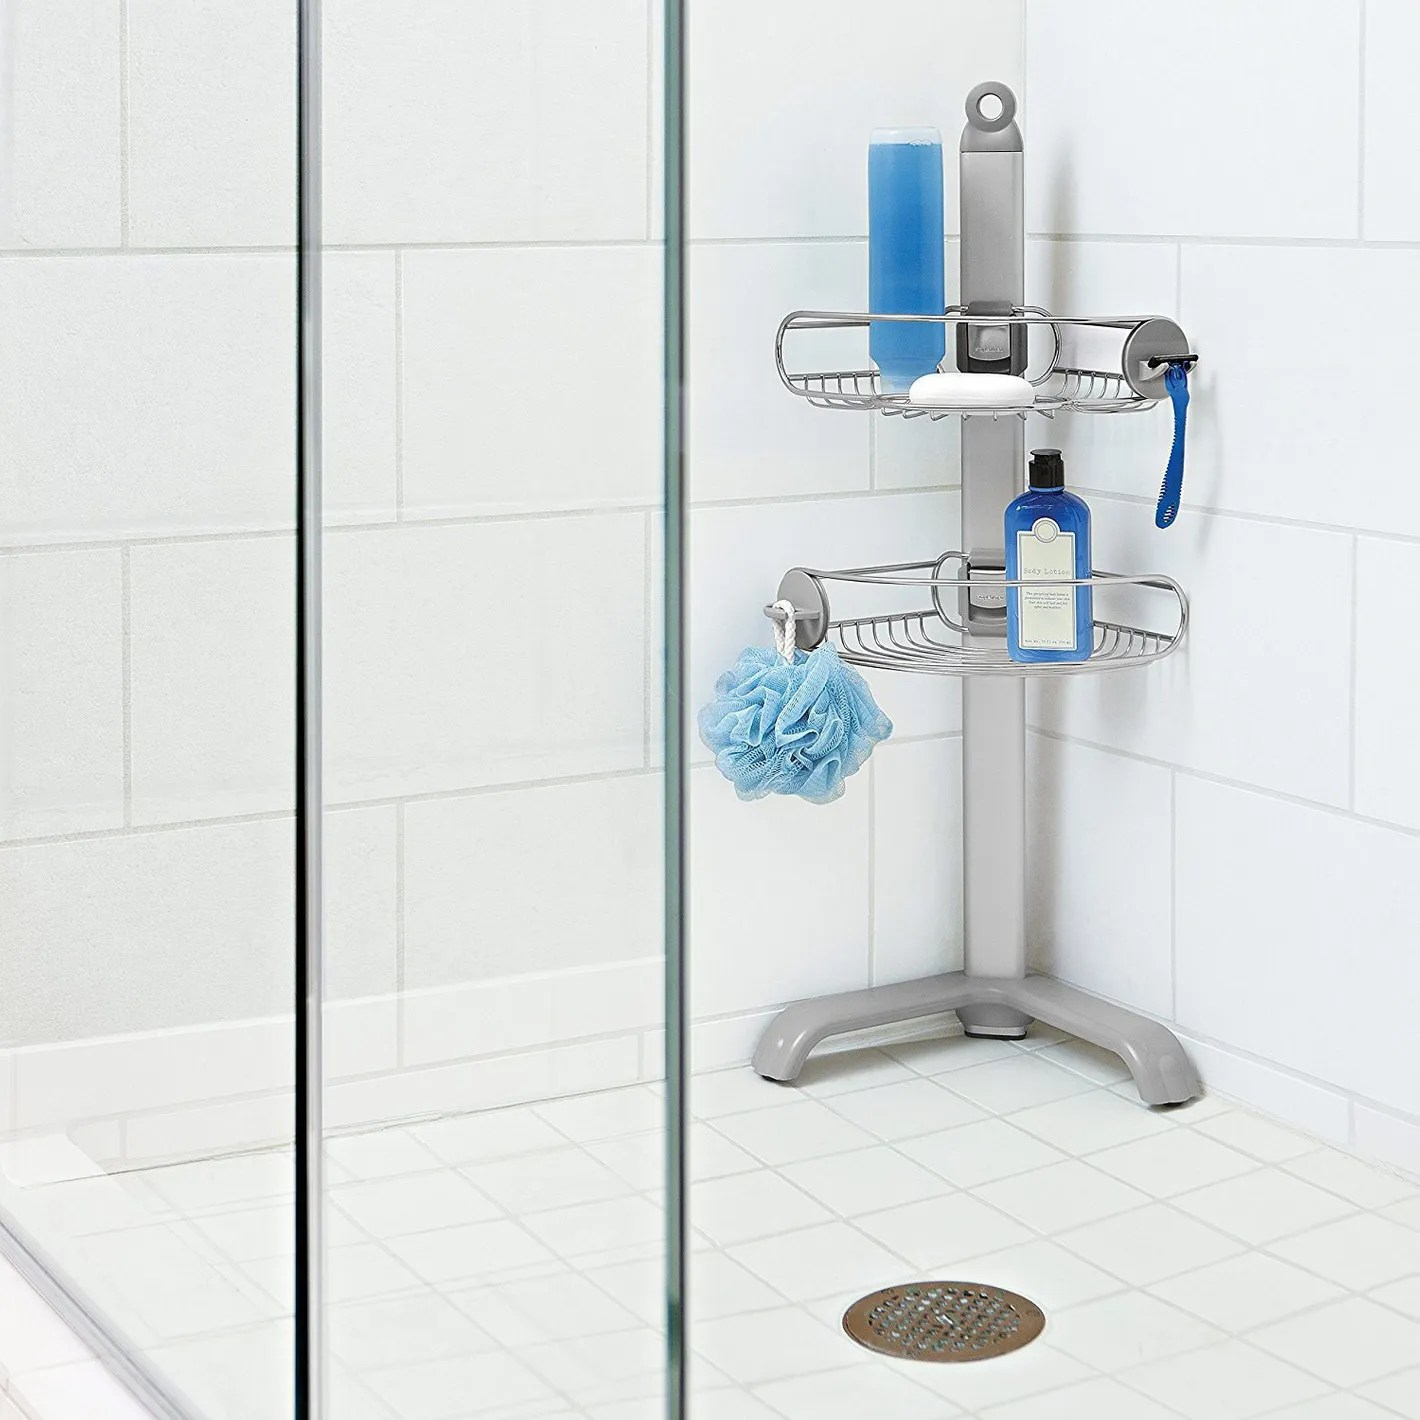 Bathroom Shower Dispensers Simplehuman Corner Shower Caddy Adjustable Shelves Stainless Steel And Anodized Aluminum